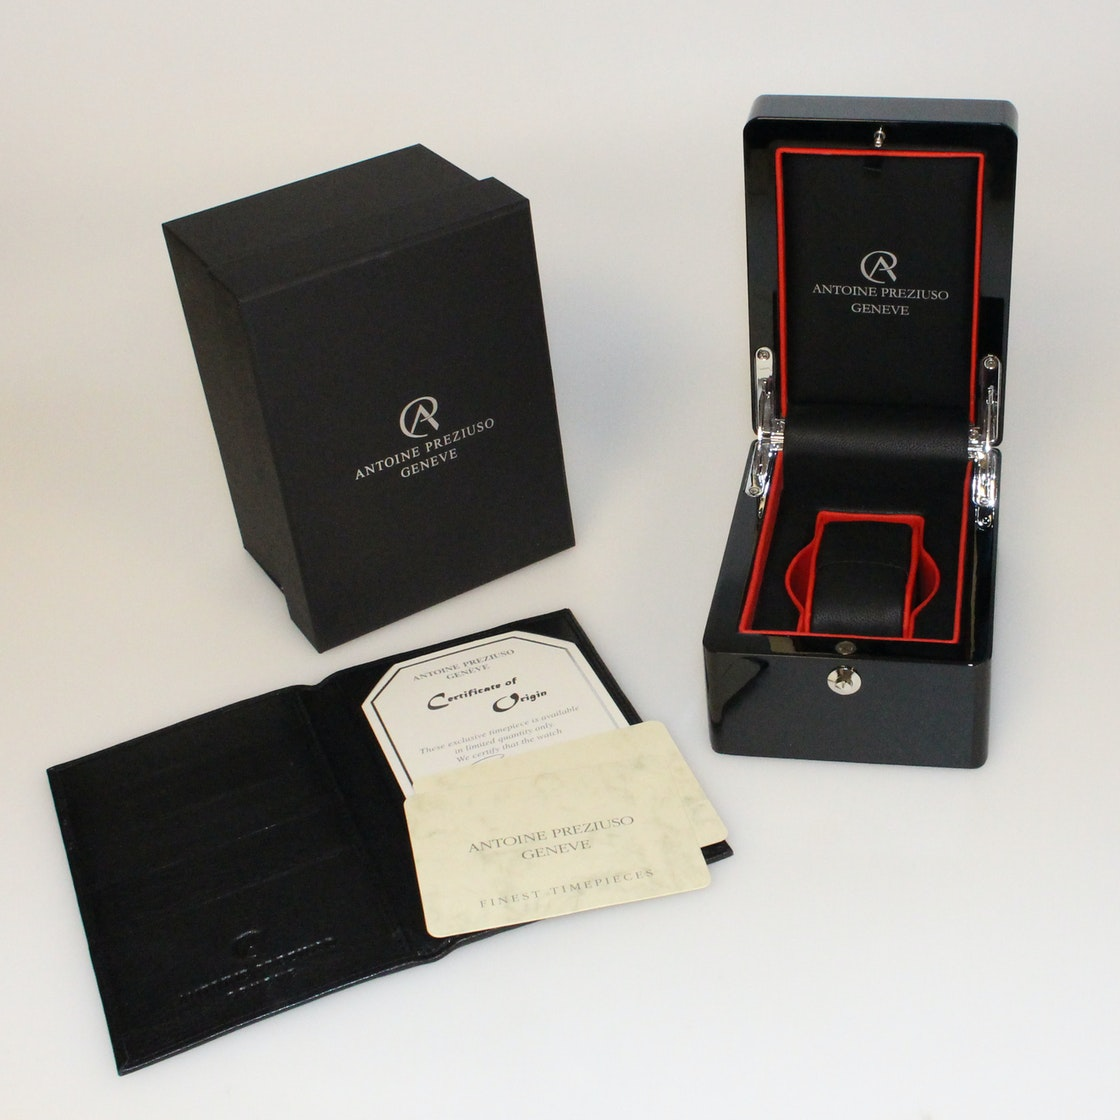 Antoine Preziuso Power Energy Indicator Limited Edition AFP-015-018-GTS